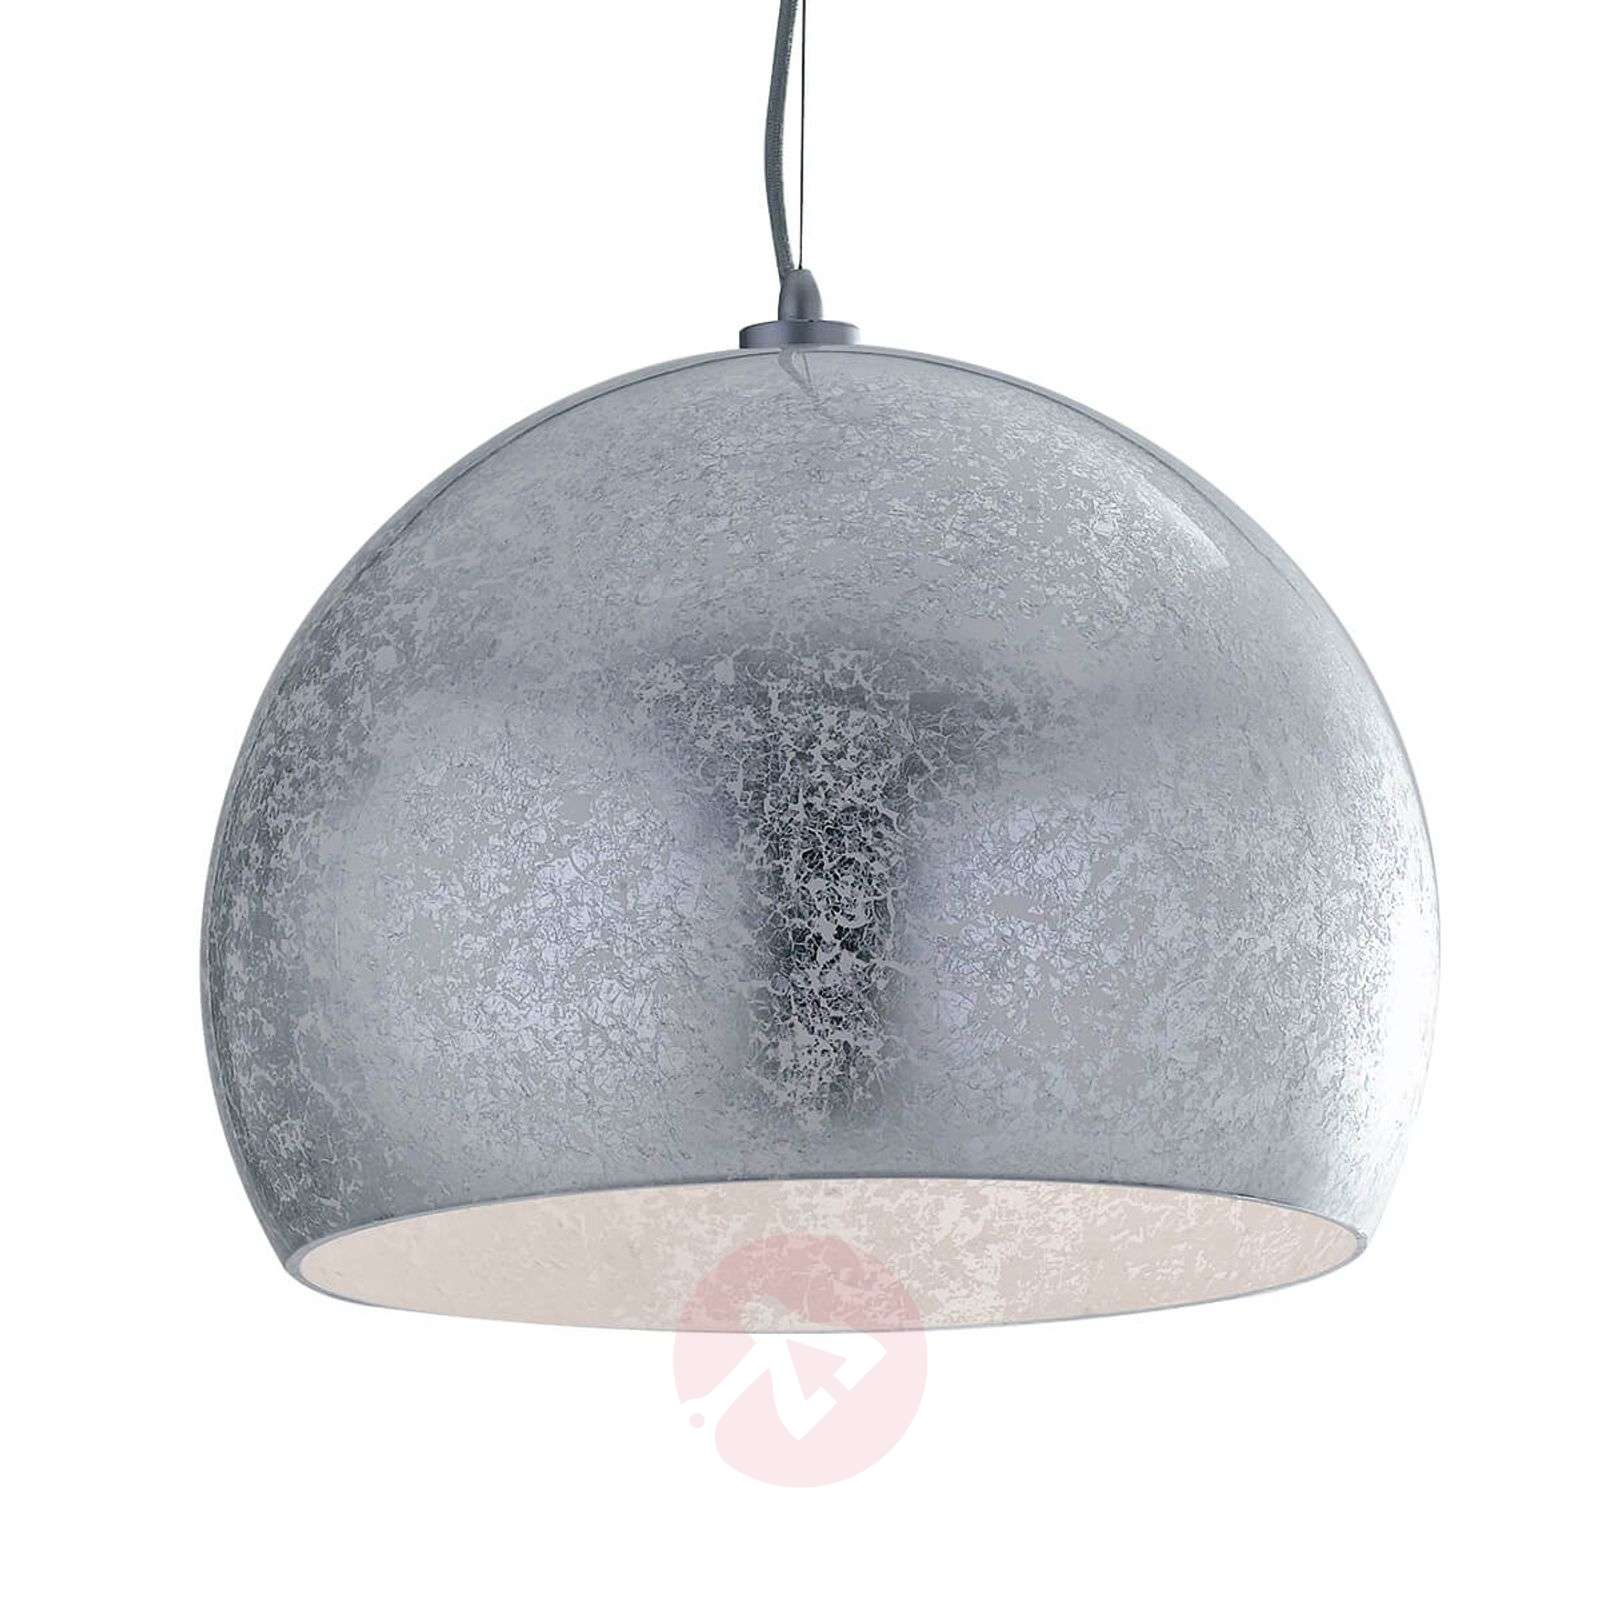 Extravagant Hanging Light Vanity, Glass Lampshade